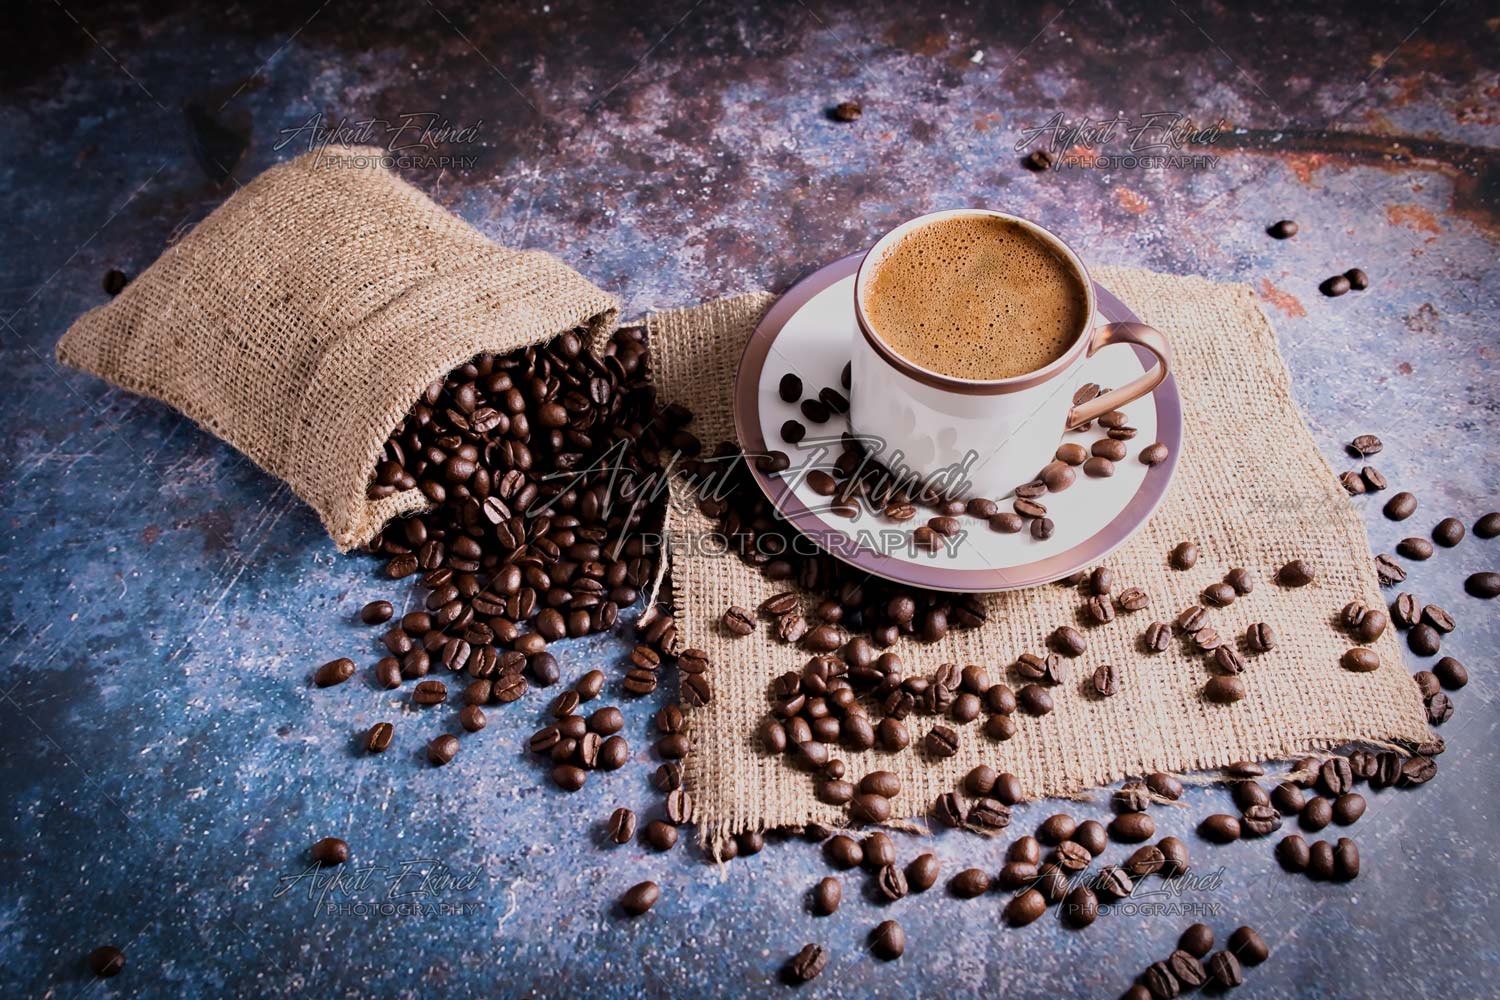 Roasted Brown Coffee Beans and Turkish coffee on the Rustic Table